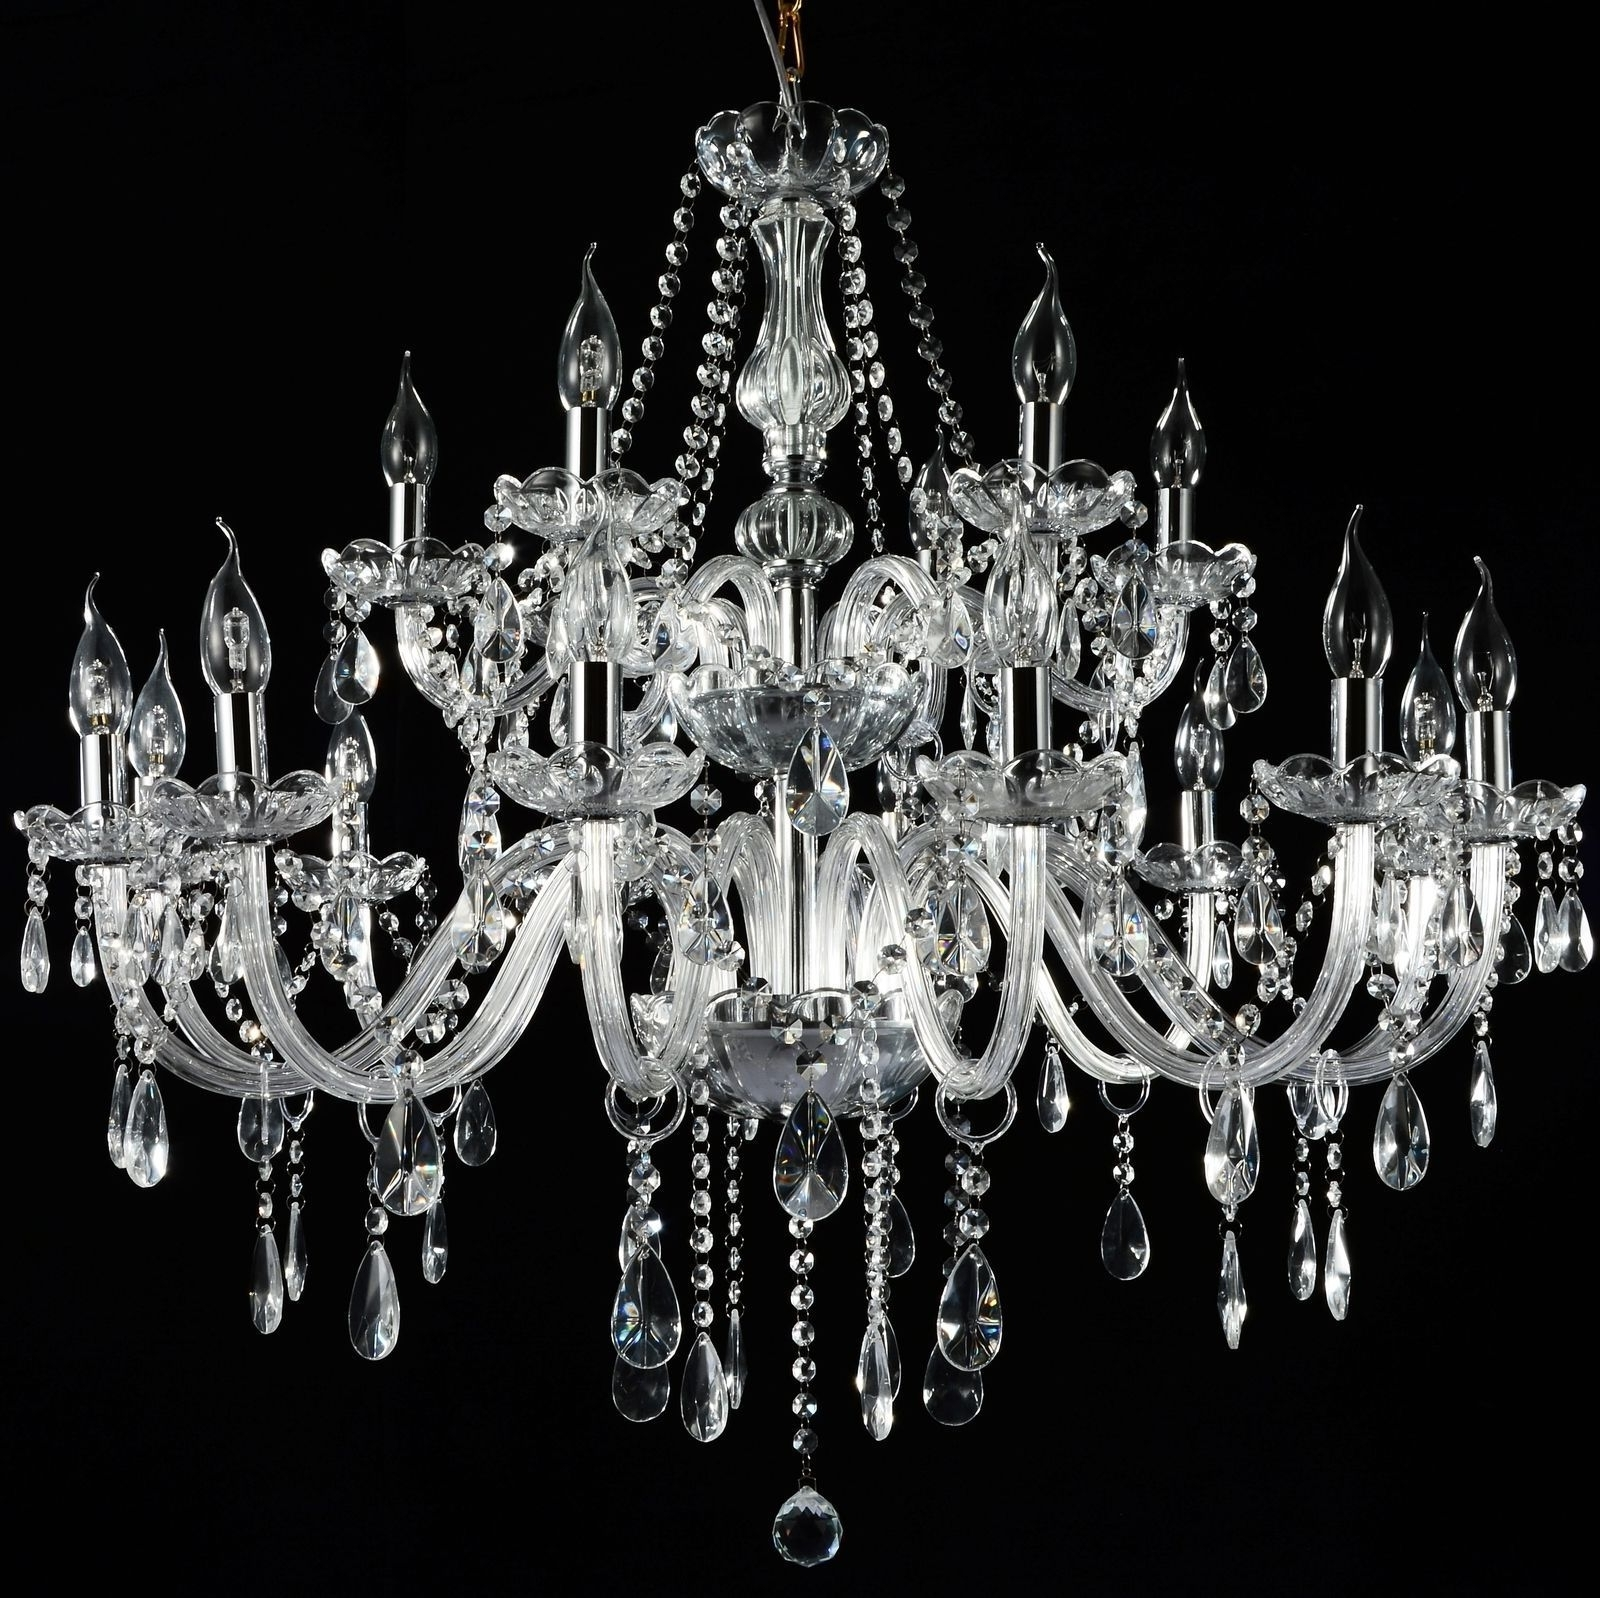 Current French Provincial Glass Chandelier 18 Arms (12+6) Ceiling Lights Pertaining To French Glass Chandelier (View 4 of 20)